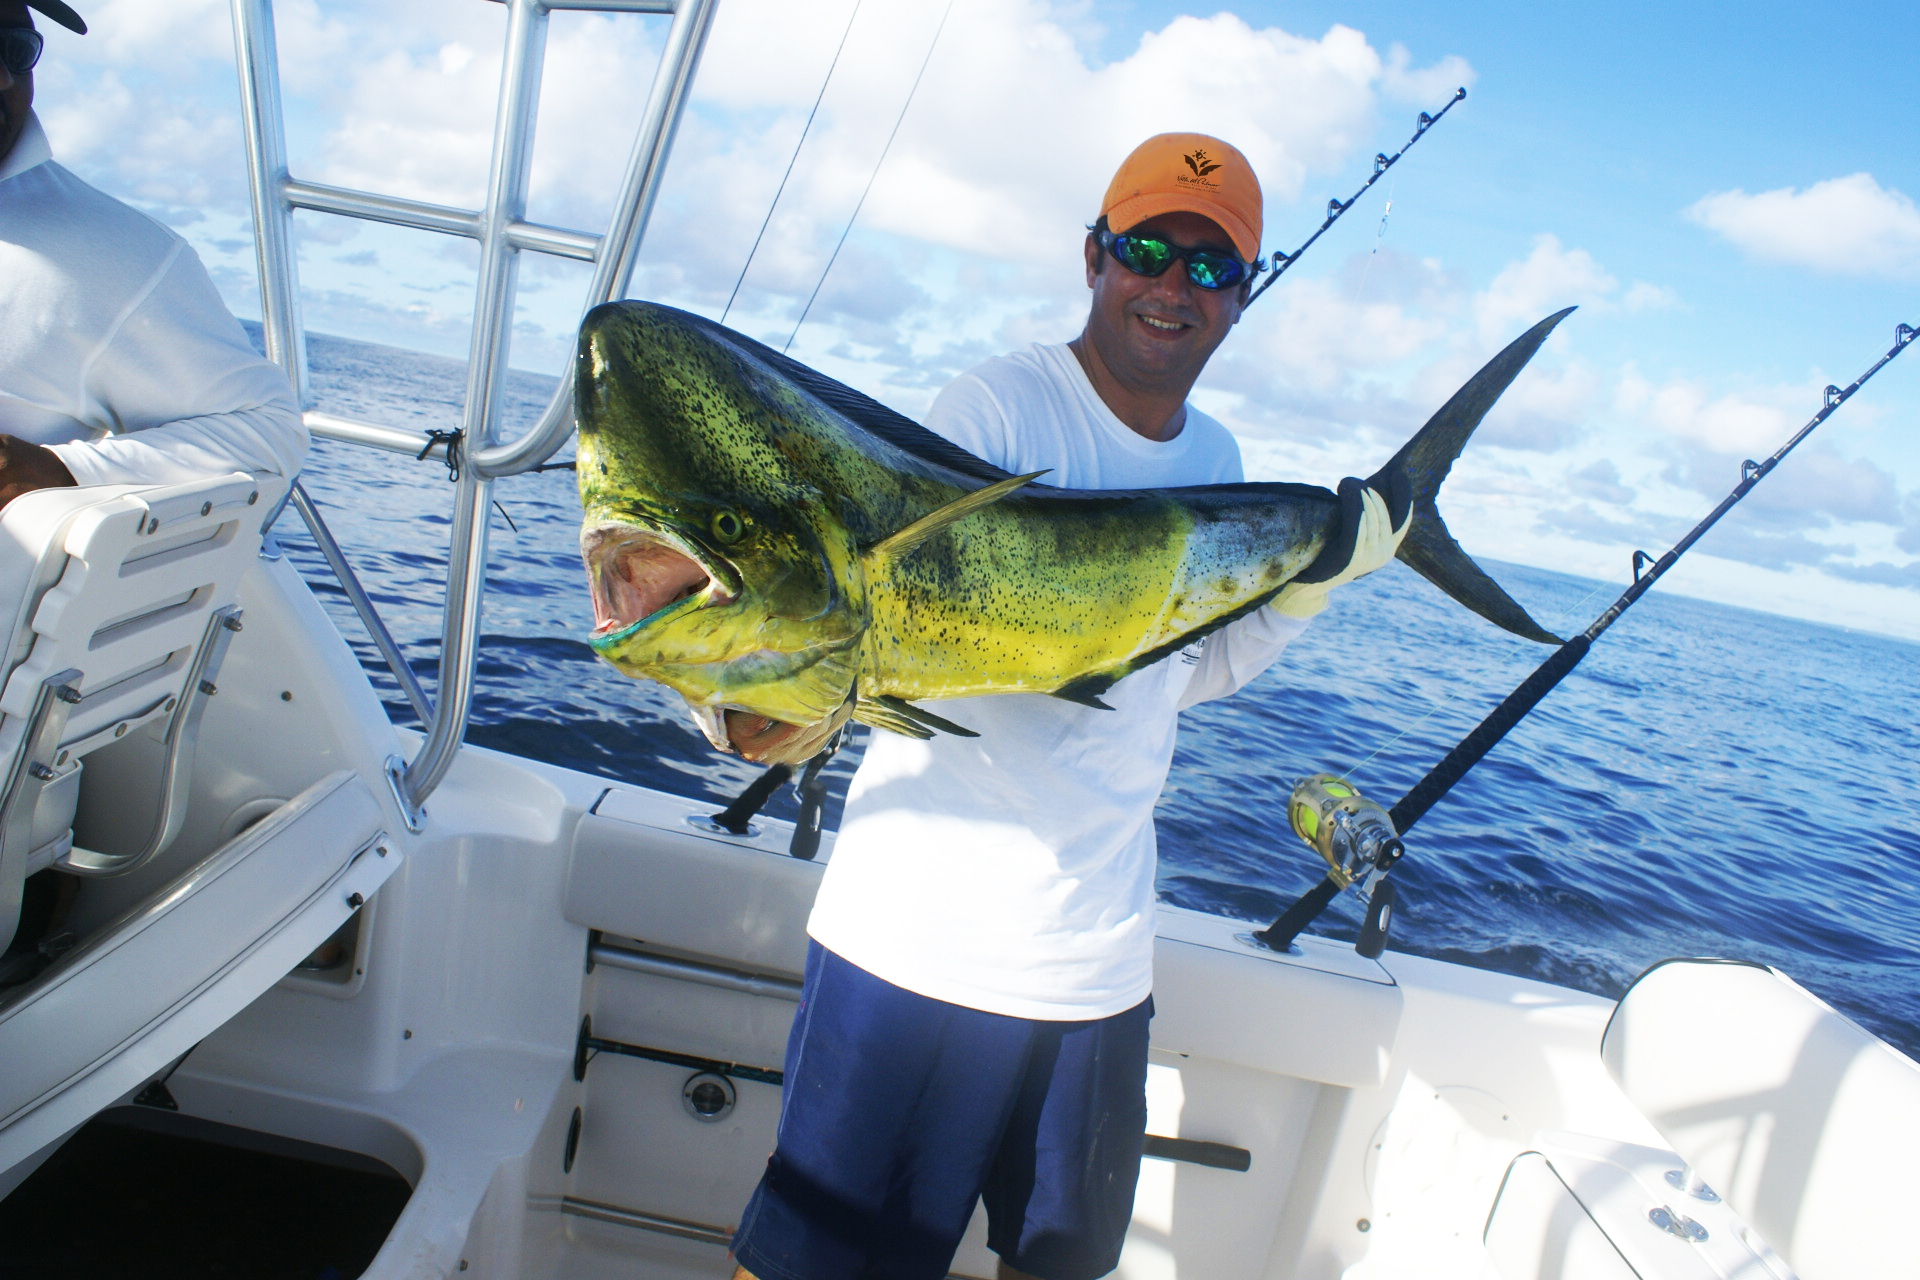 Reel in an adventure of a lifetime with villa del palmar for Loreto mexico fishing